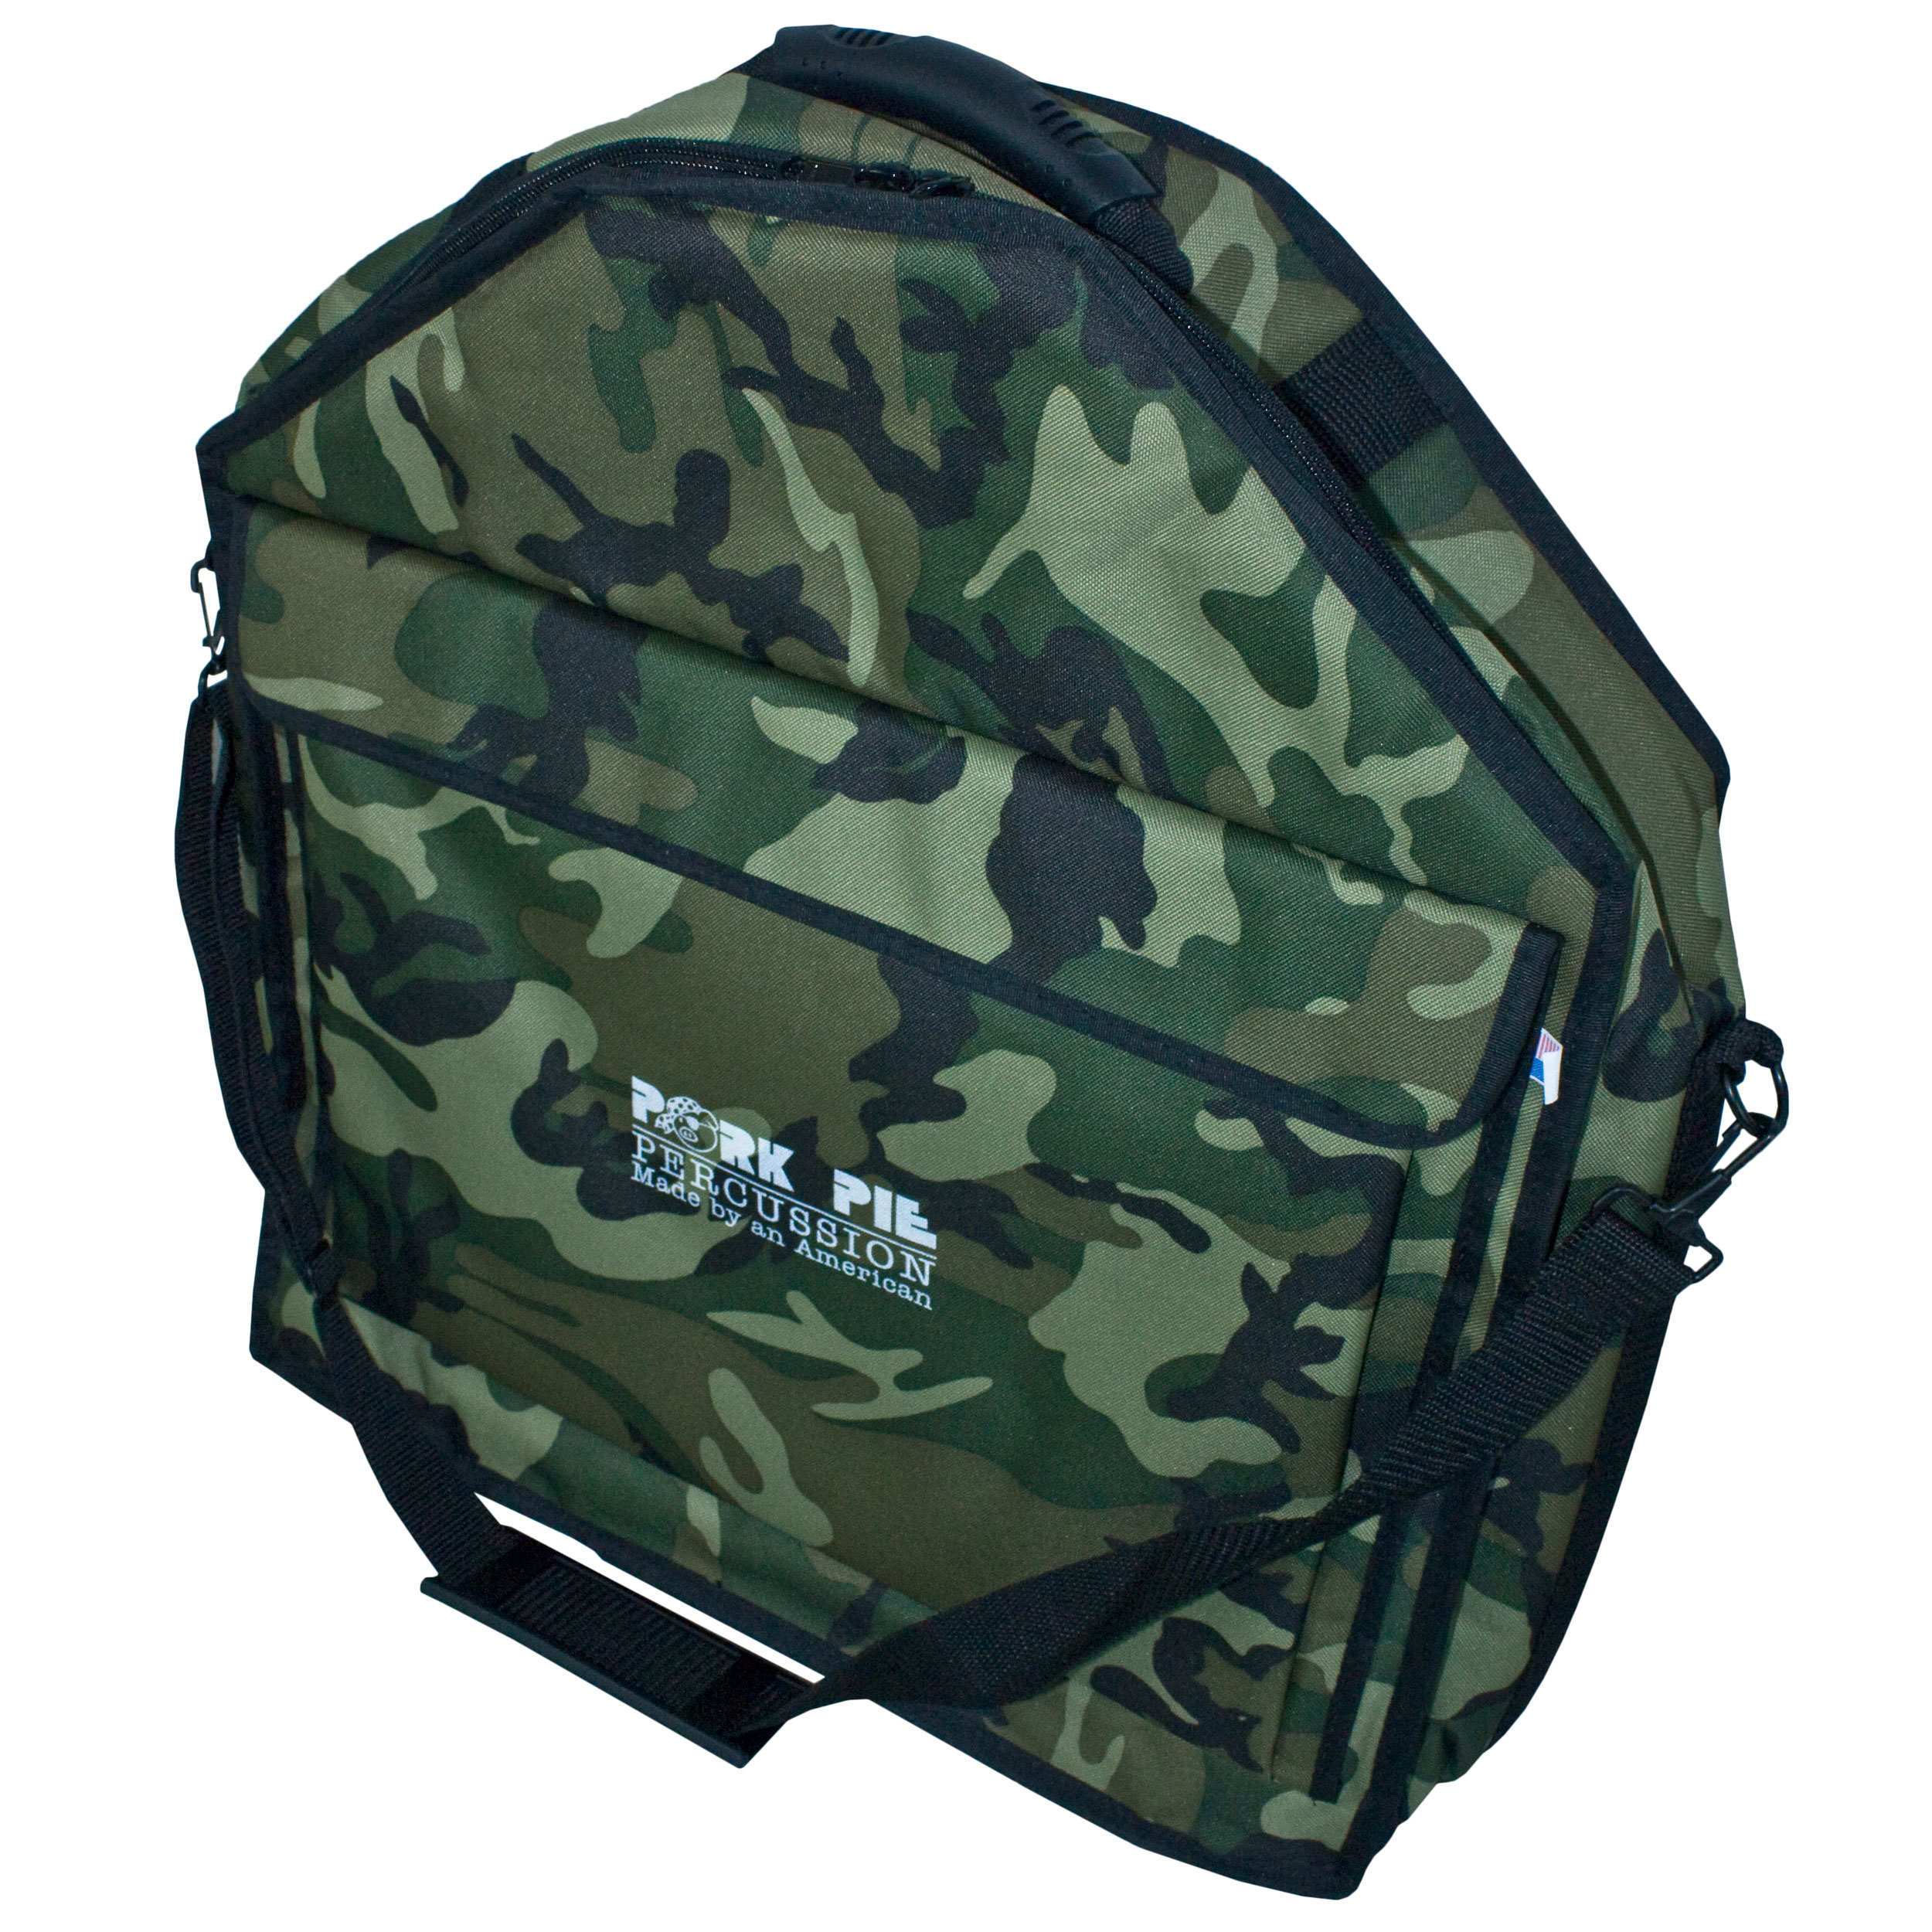 Pork Pie Percussion Camouflage Pig Throne Bag